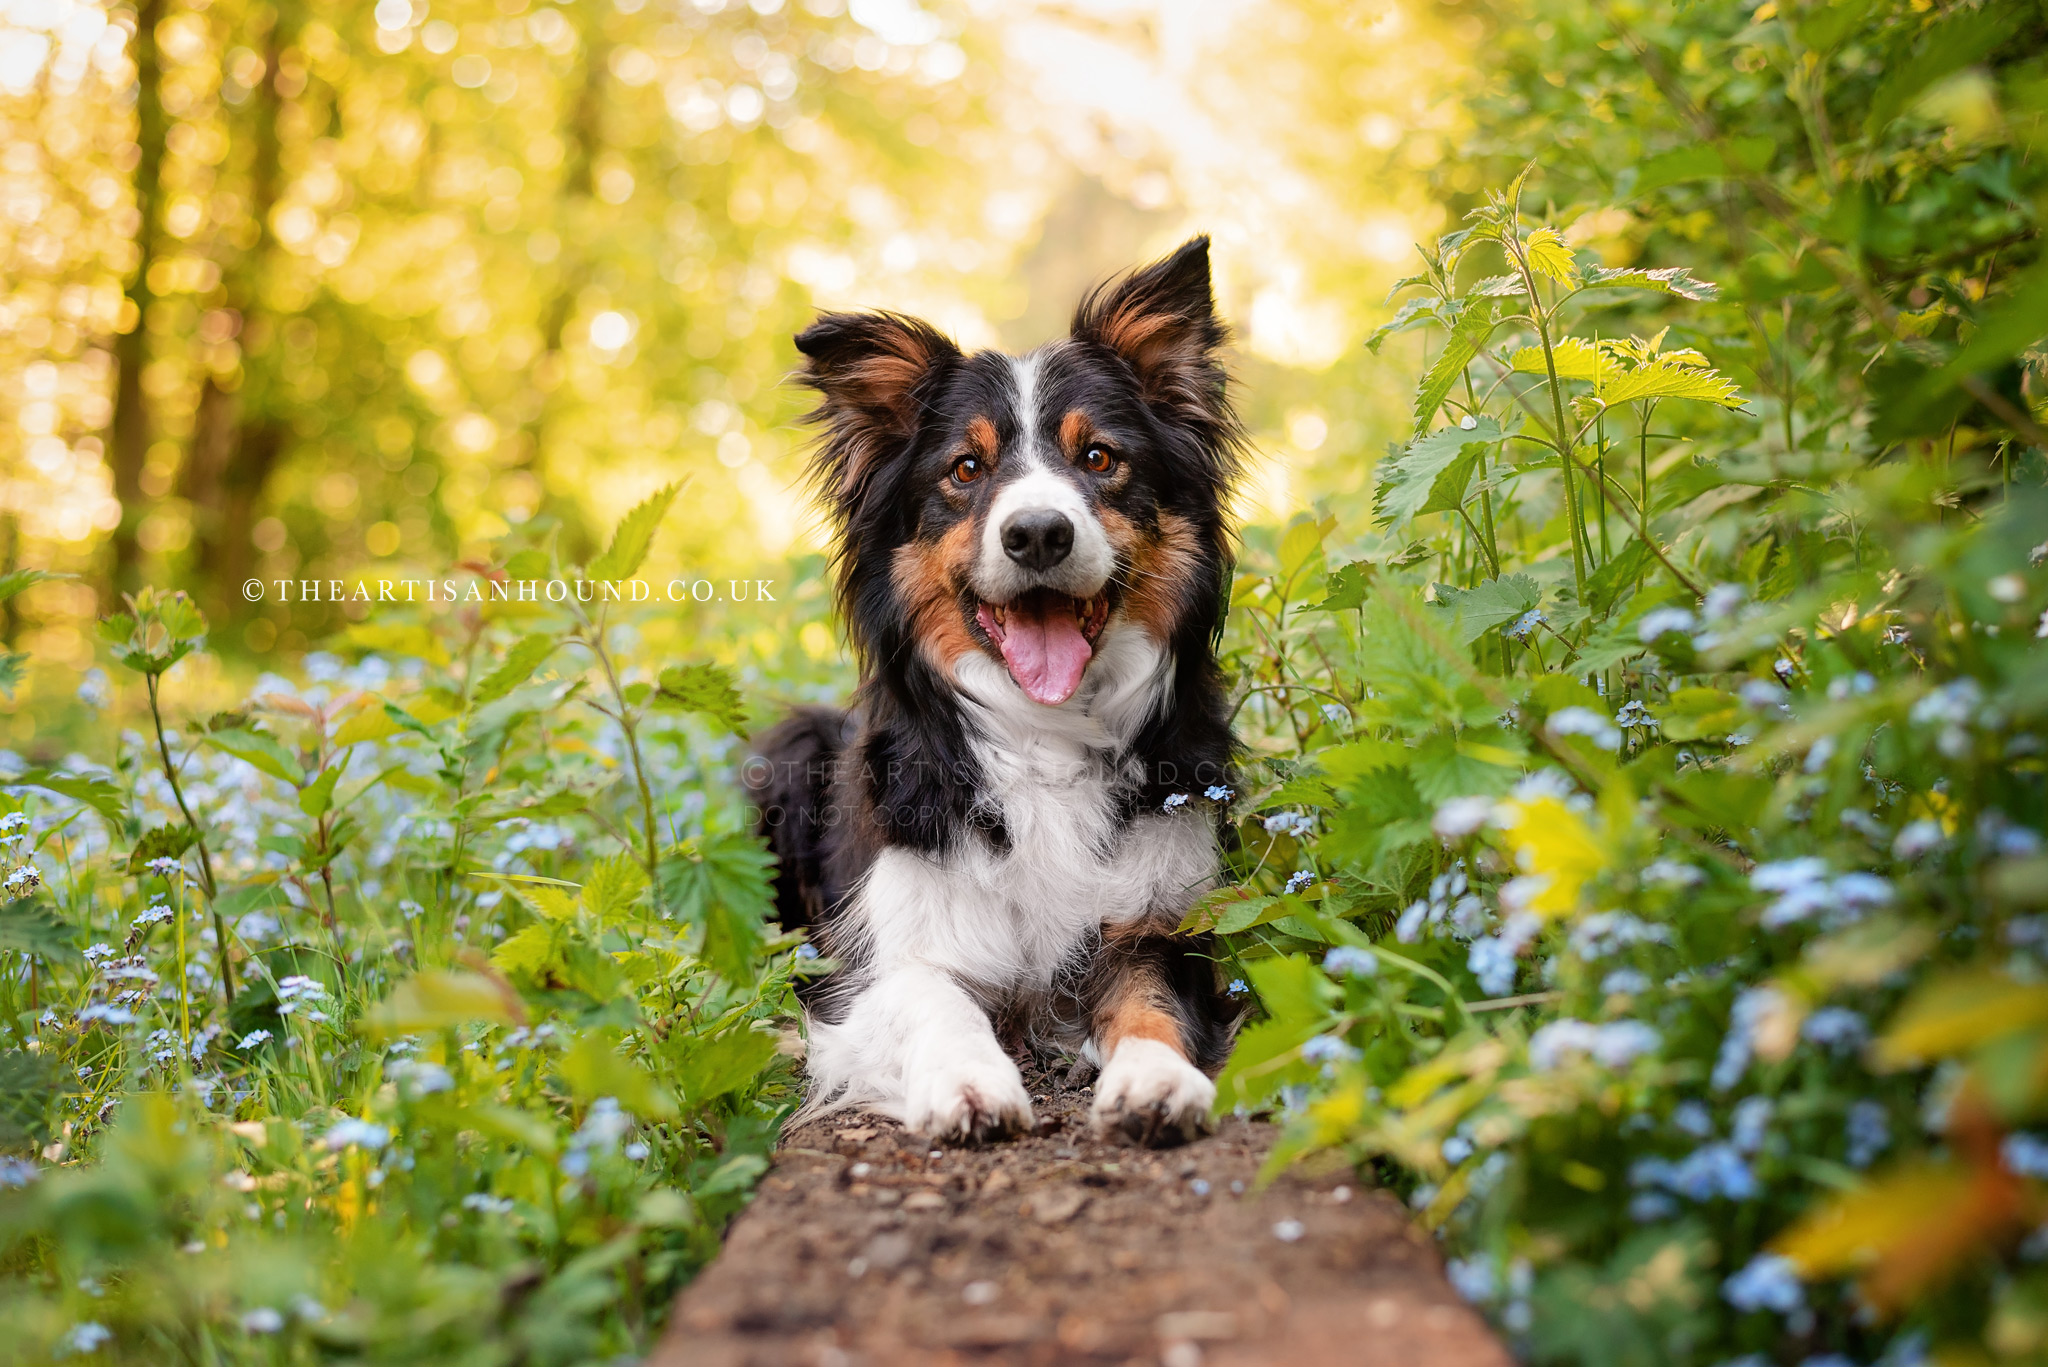 Border Collie dog sitting on wooden plank in woodland